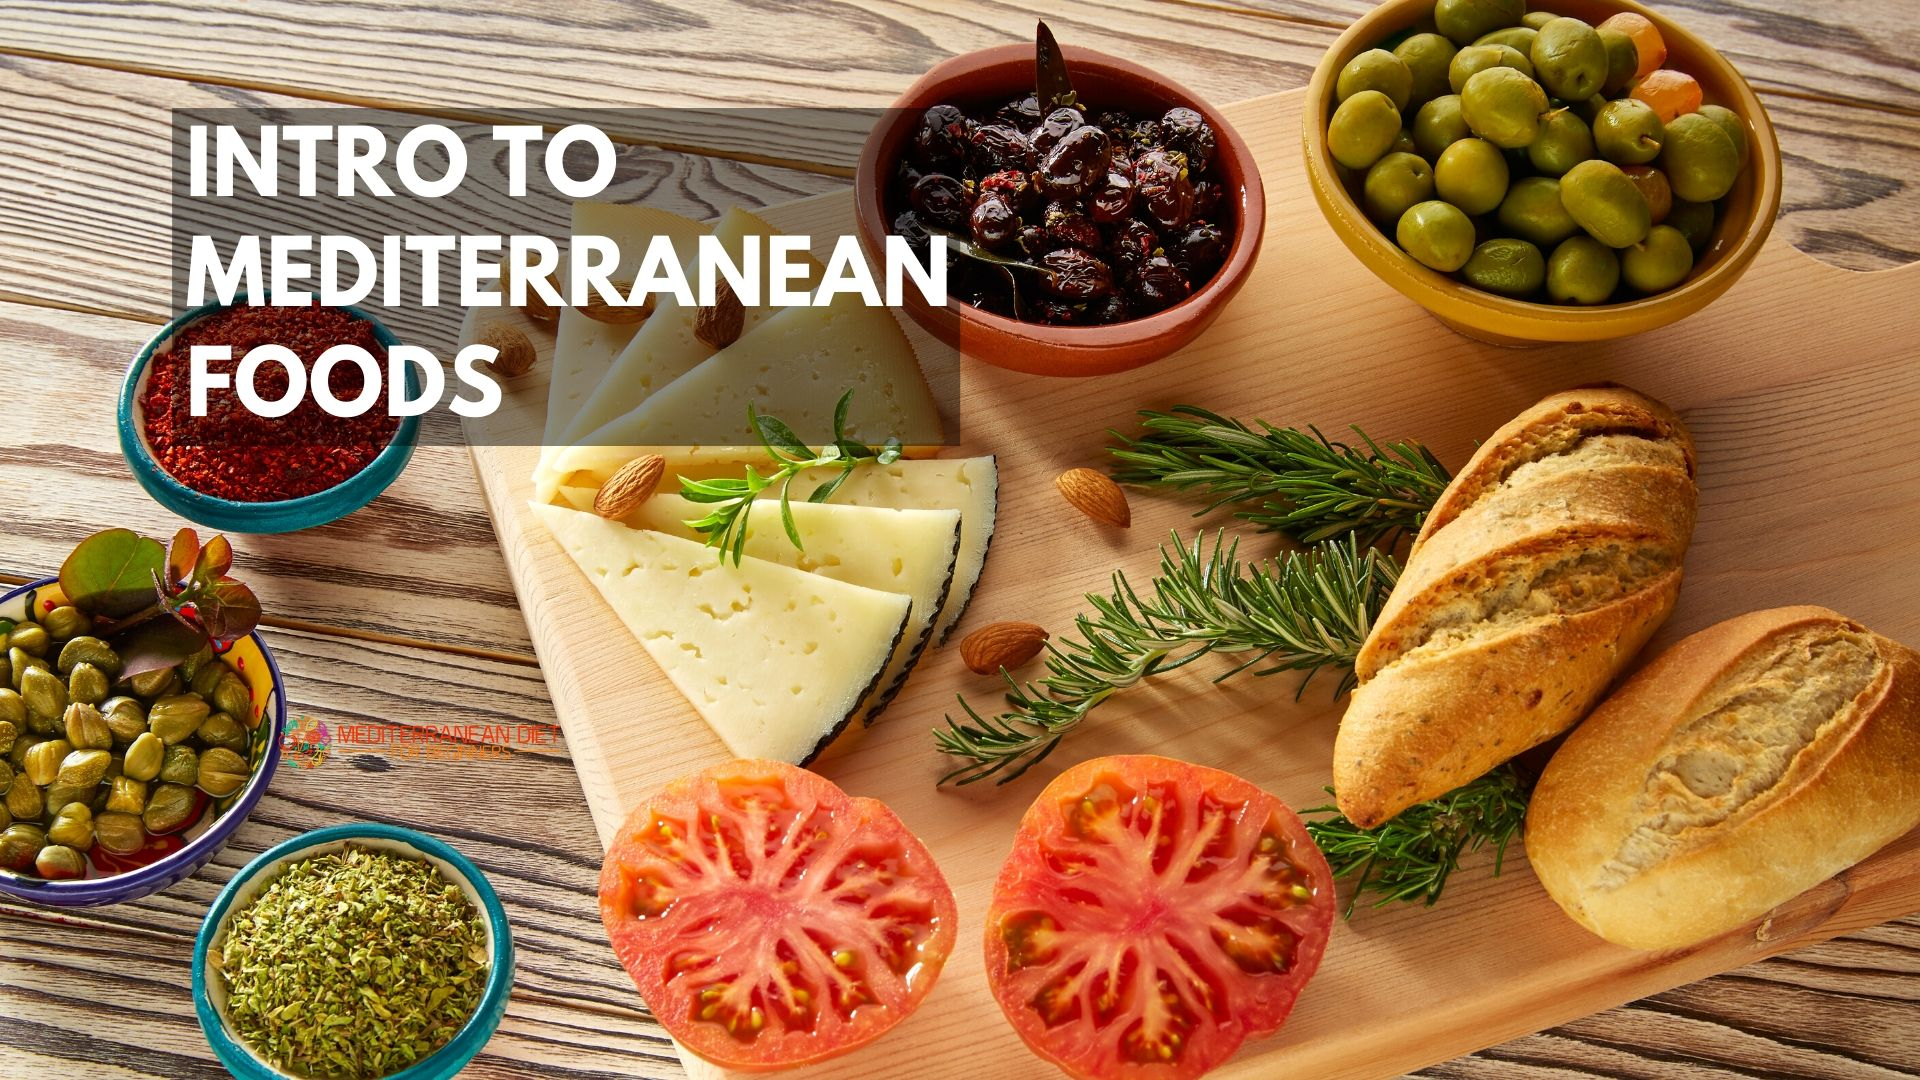 Intro to Mediterranean Foods